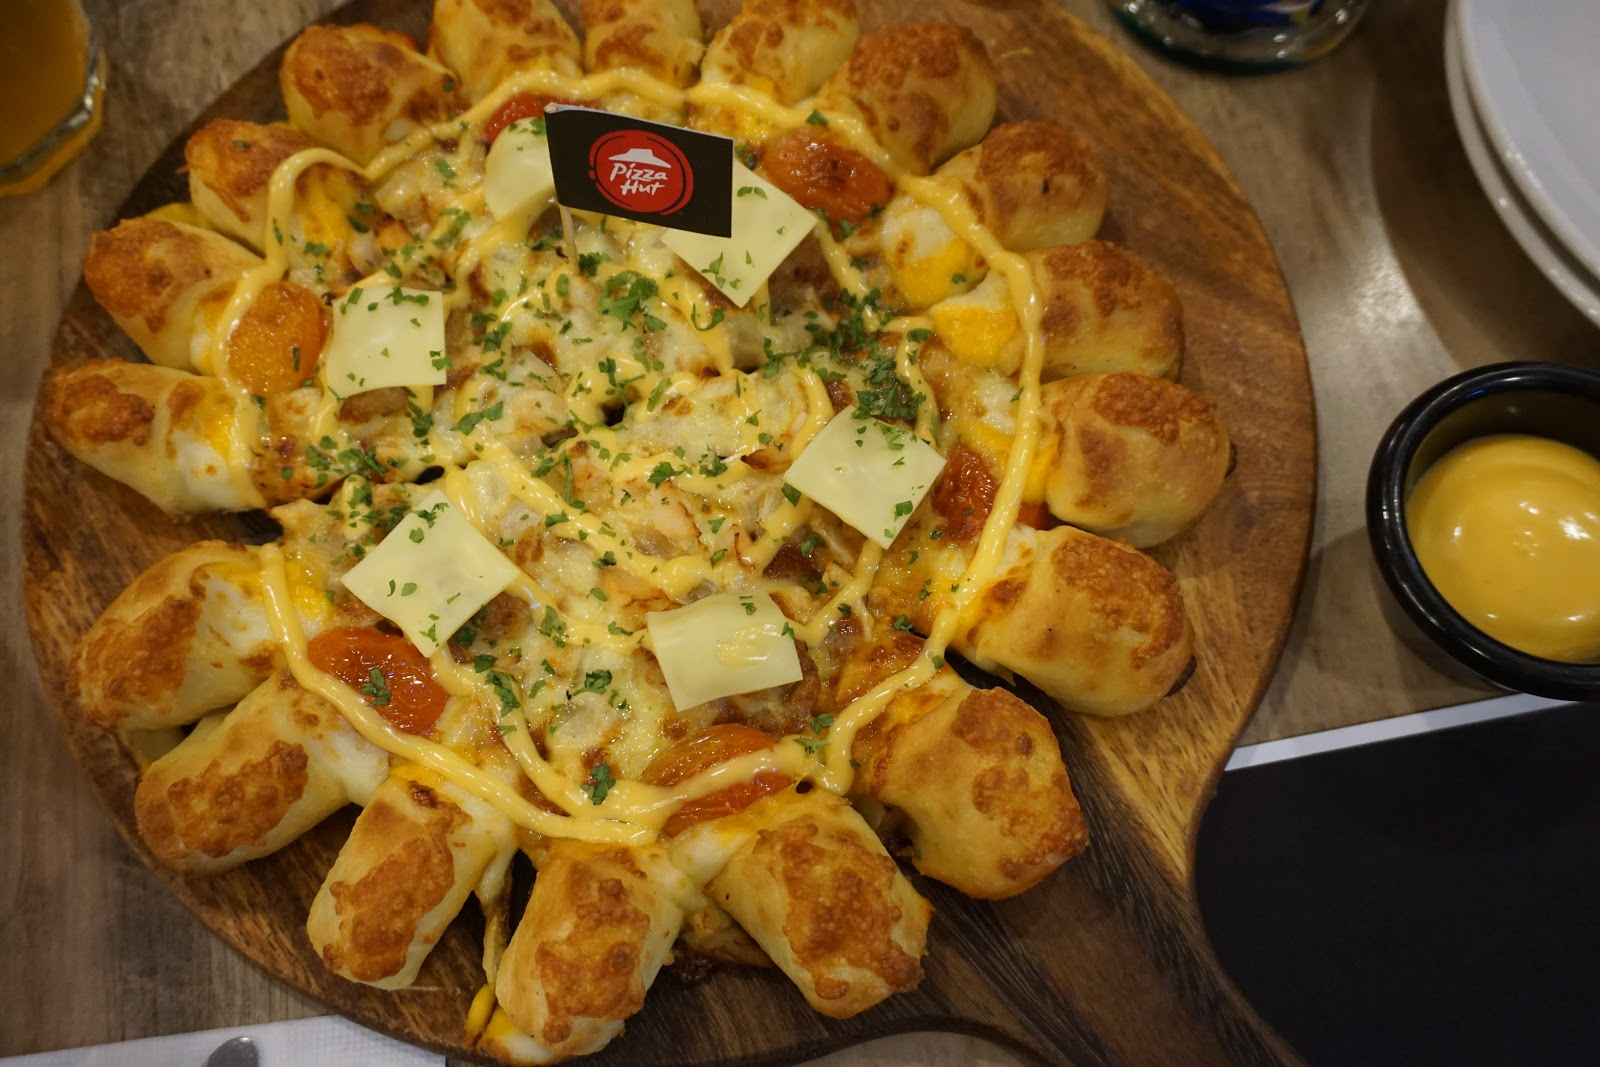 CHICKEN CHESSY BITES, PIZZA HUT, PIZZA HUT MALAYSIA, PIZZA HUT SIAPA KENA,